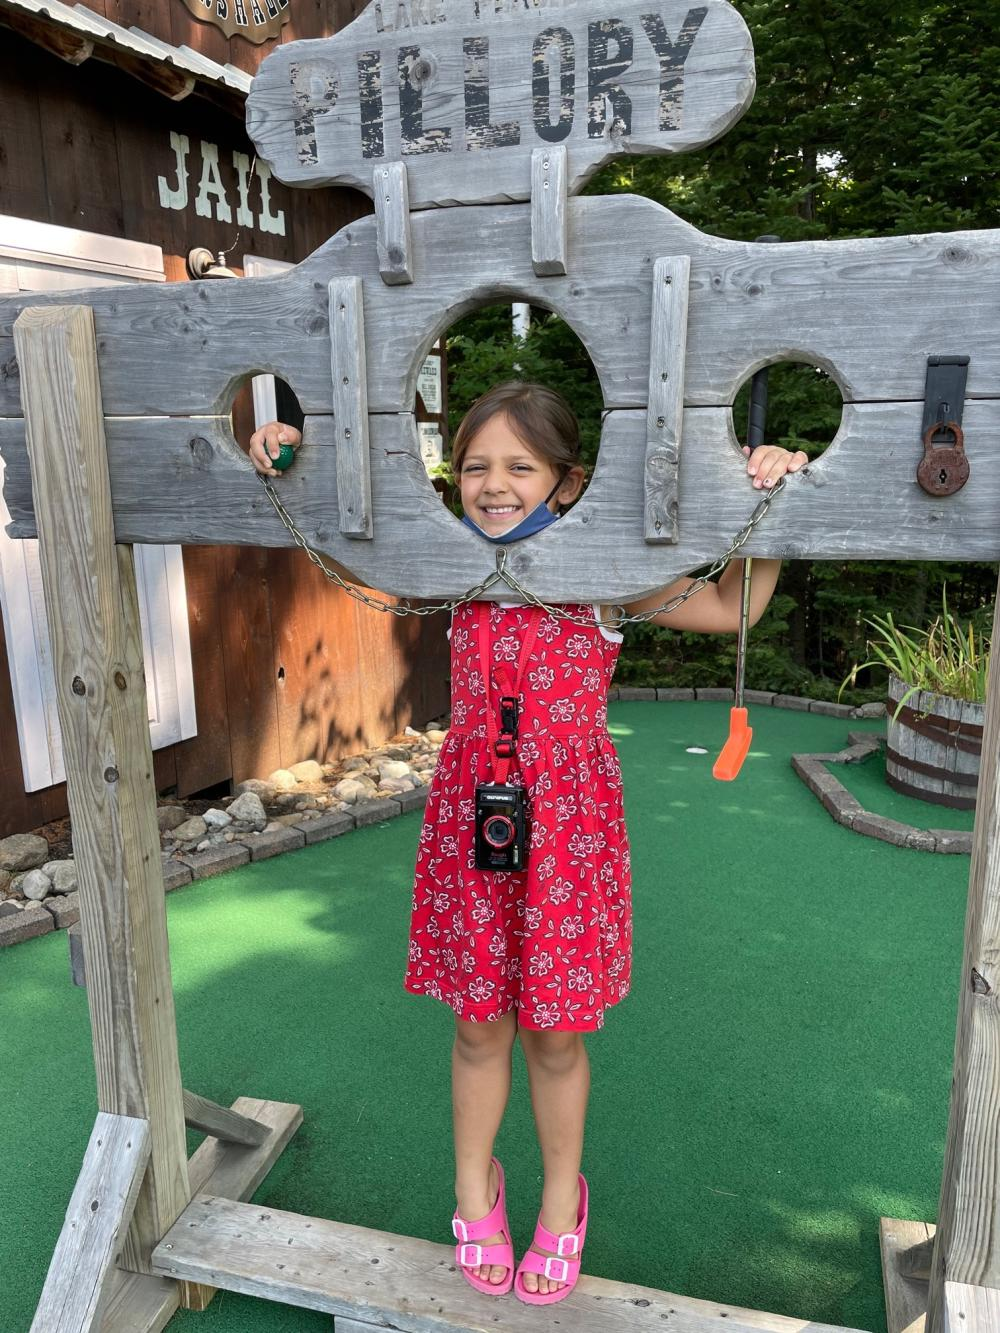 A small girl in a red dress poses in a wooden pillory on a mini golf course